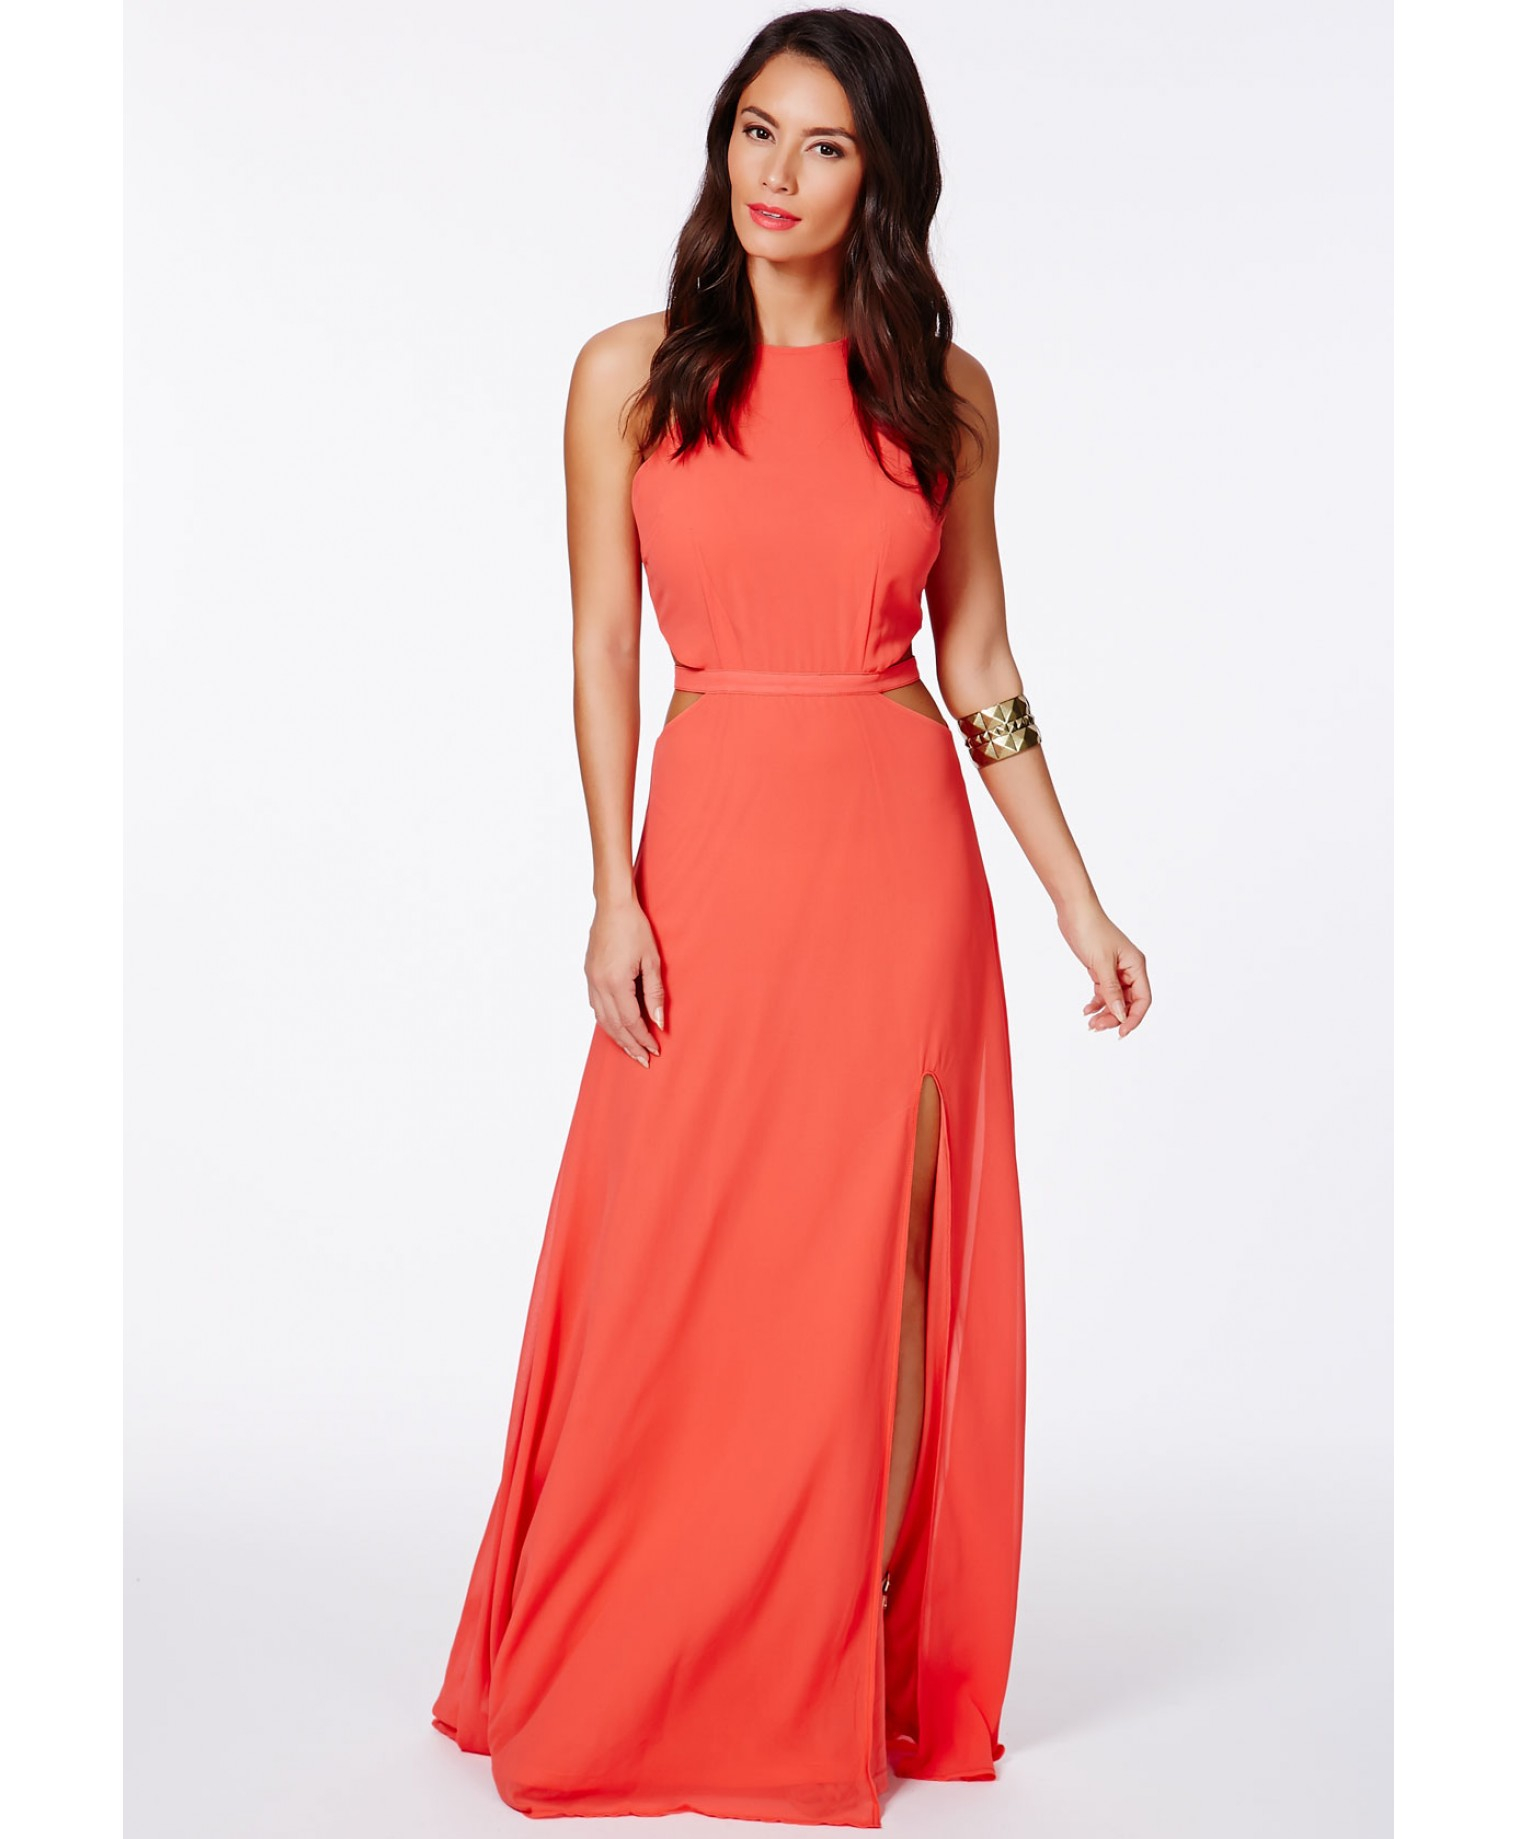 Lyst - Missguided Anthea Cut Out Split Maxi Dress In Coral in Orange